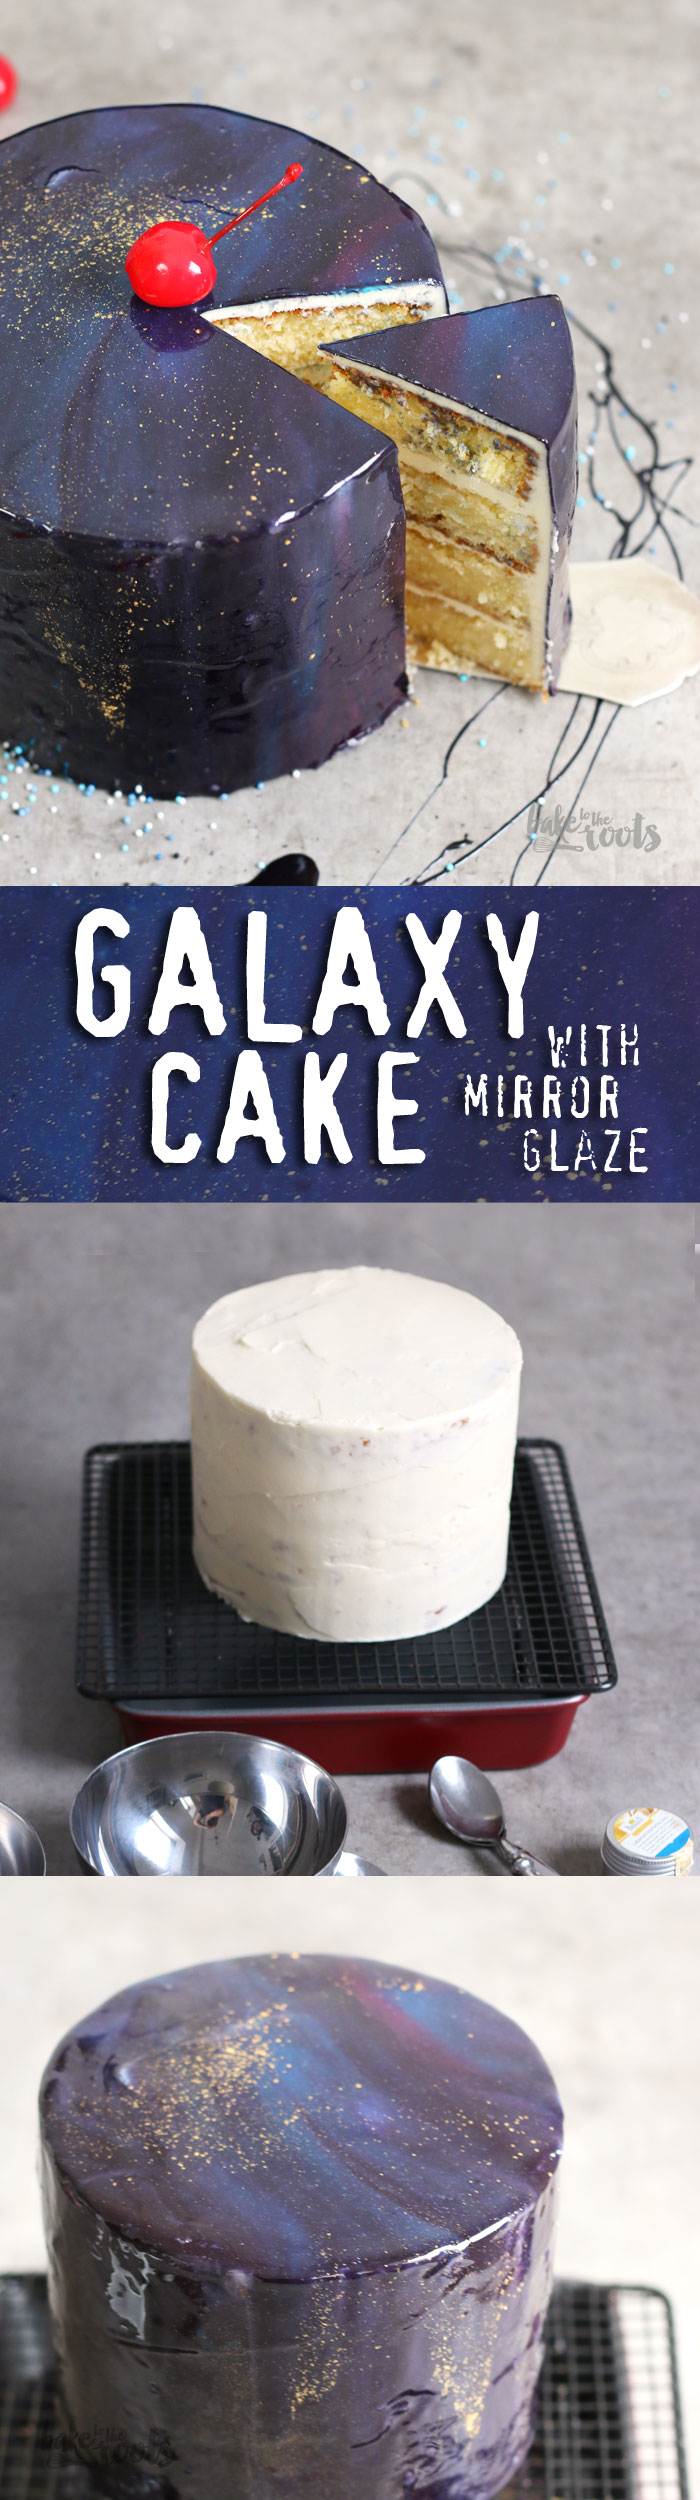 Galaxy Cake mit Mirror Glaze | Bake to the roots